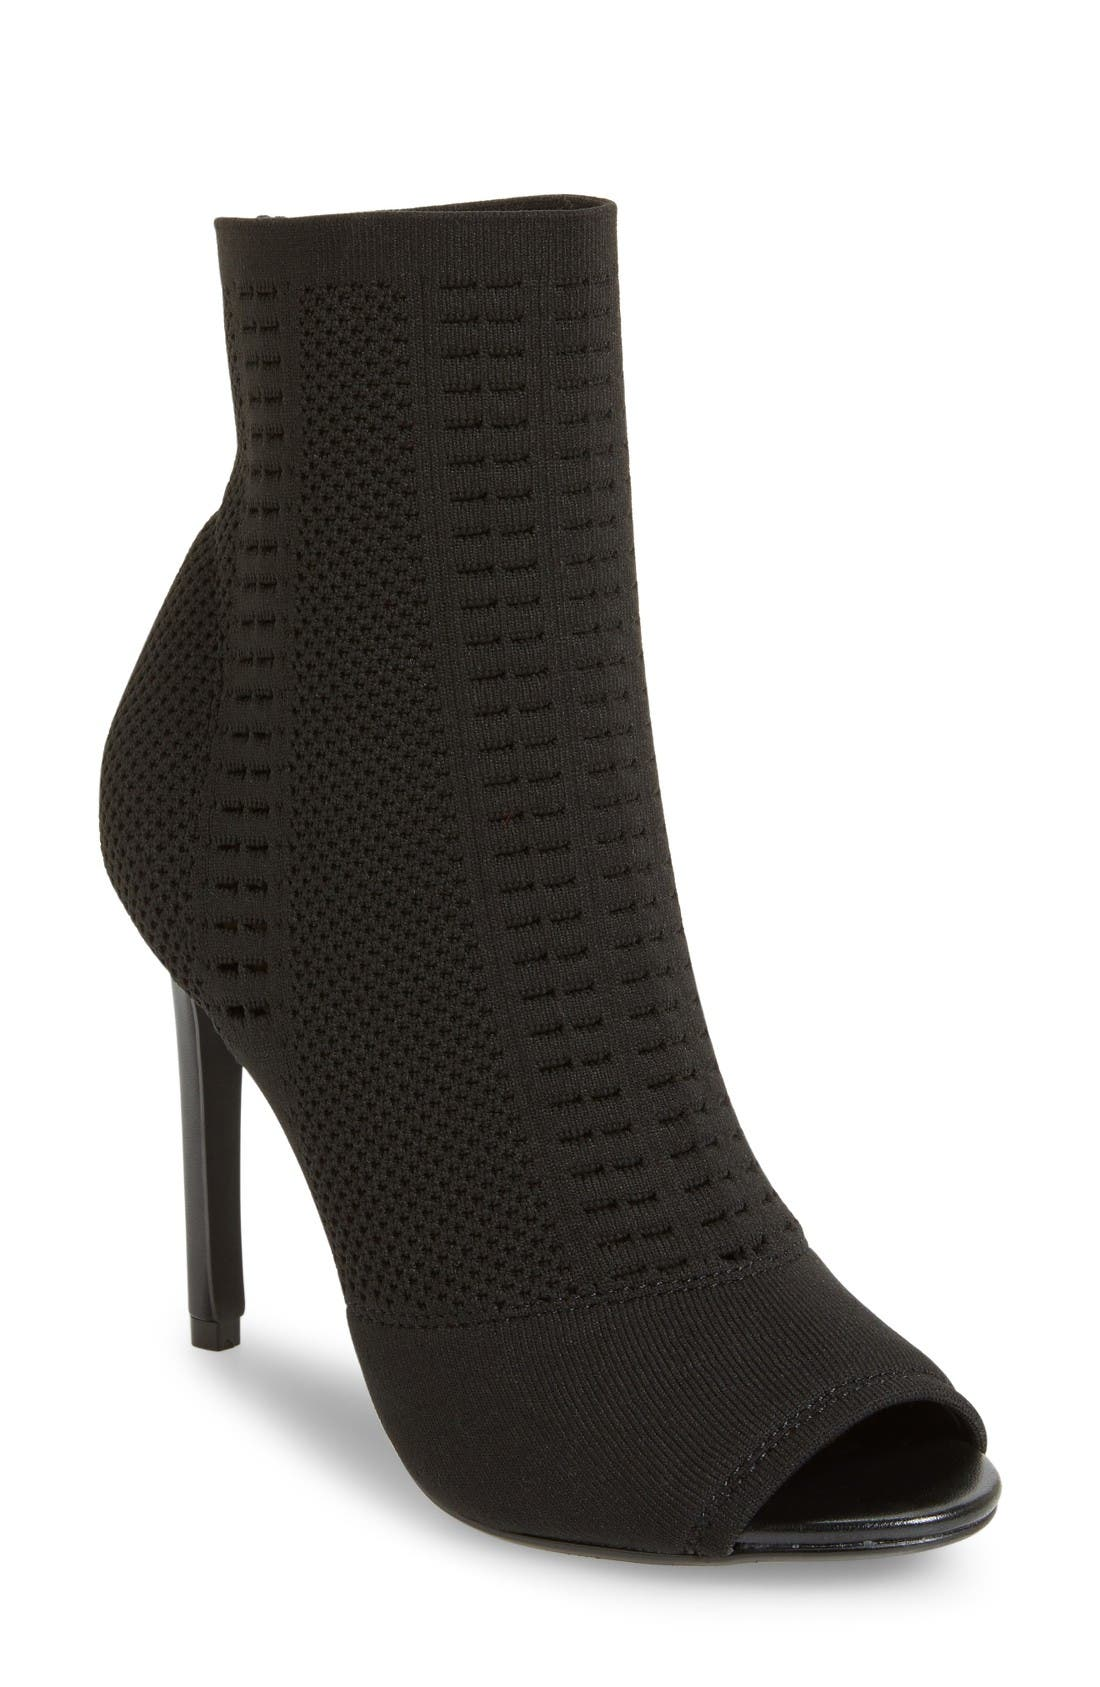 Candid Knit Bootie,                             Main thumbnail 1, color,                             Black Fabric